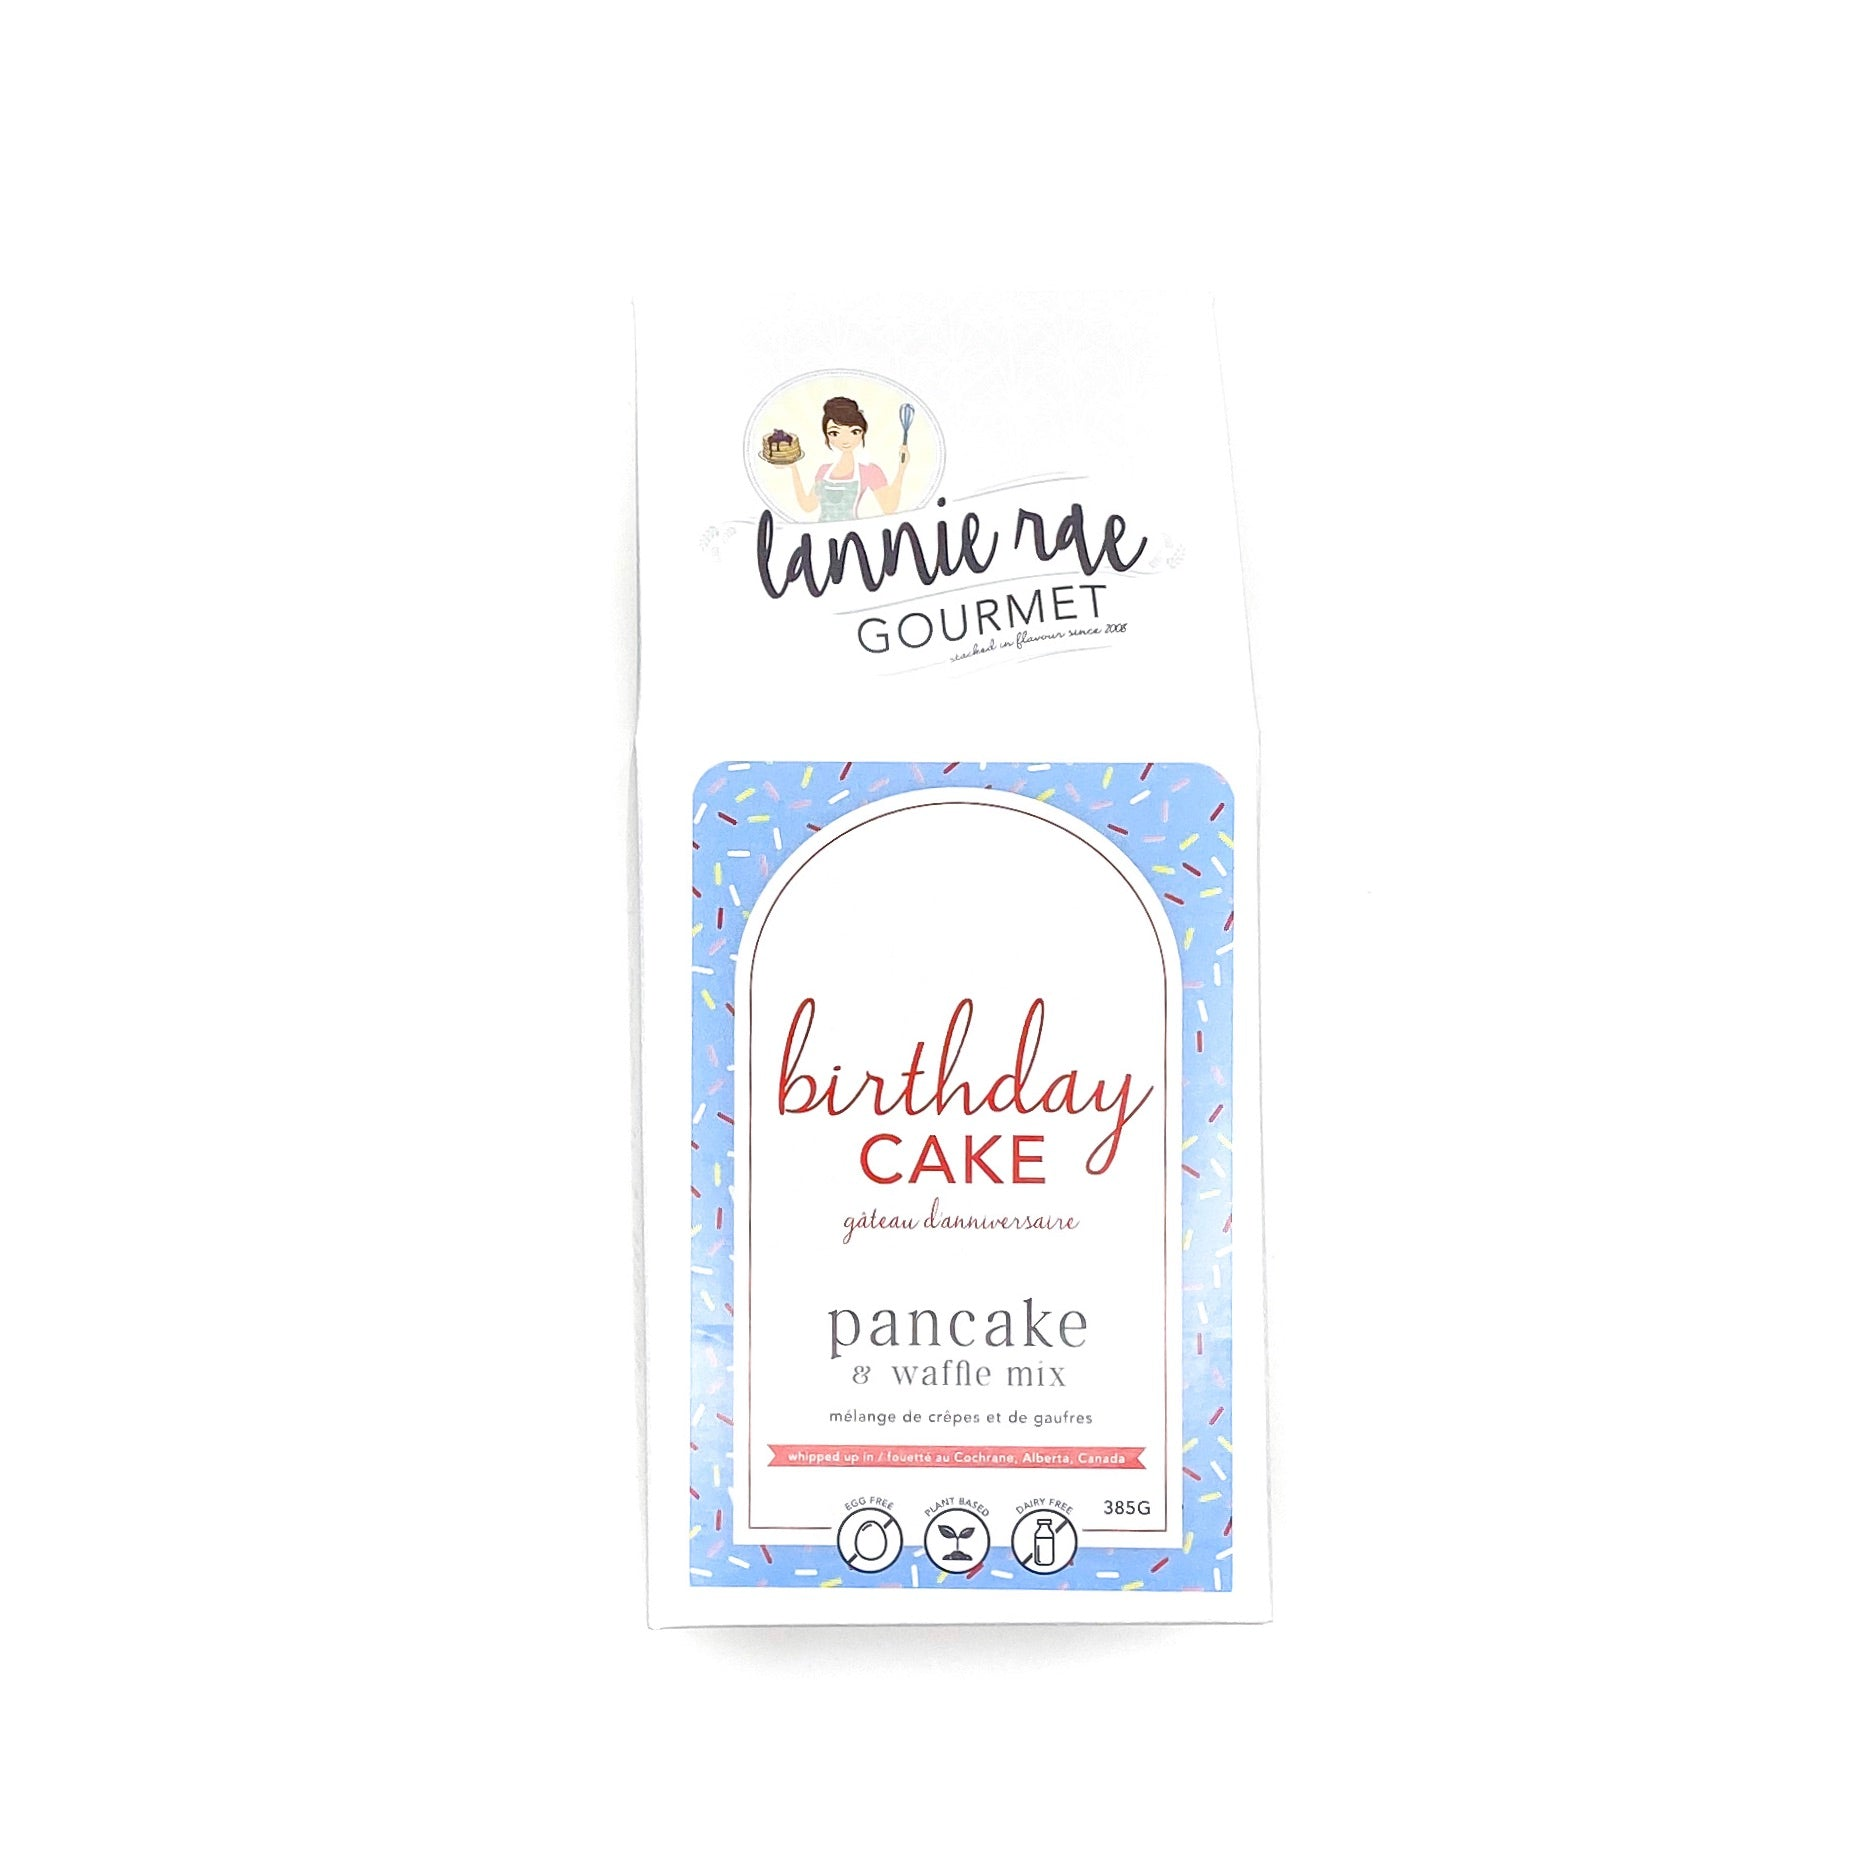 Lannie Rae Birthday Cake Blue Label Pancake Mix